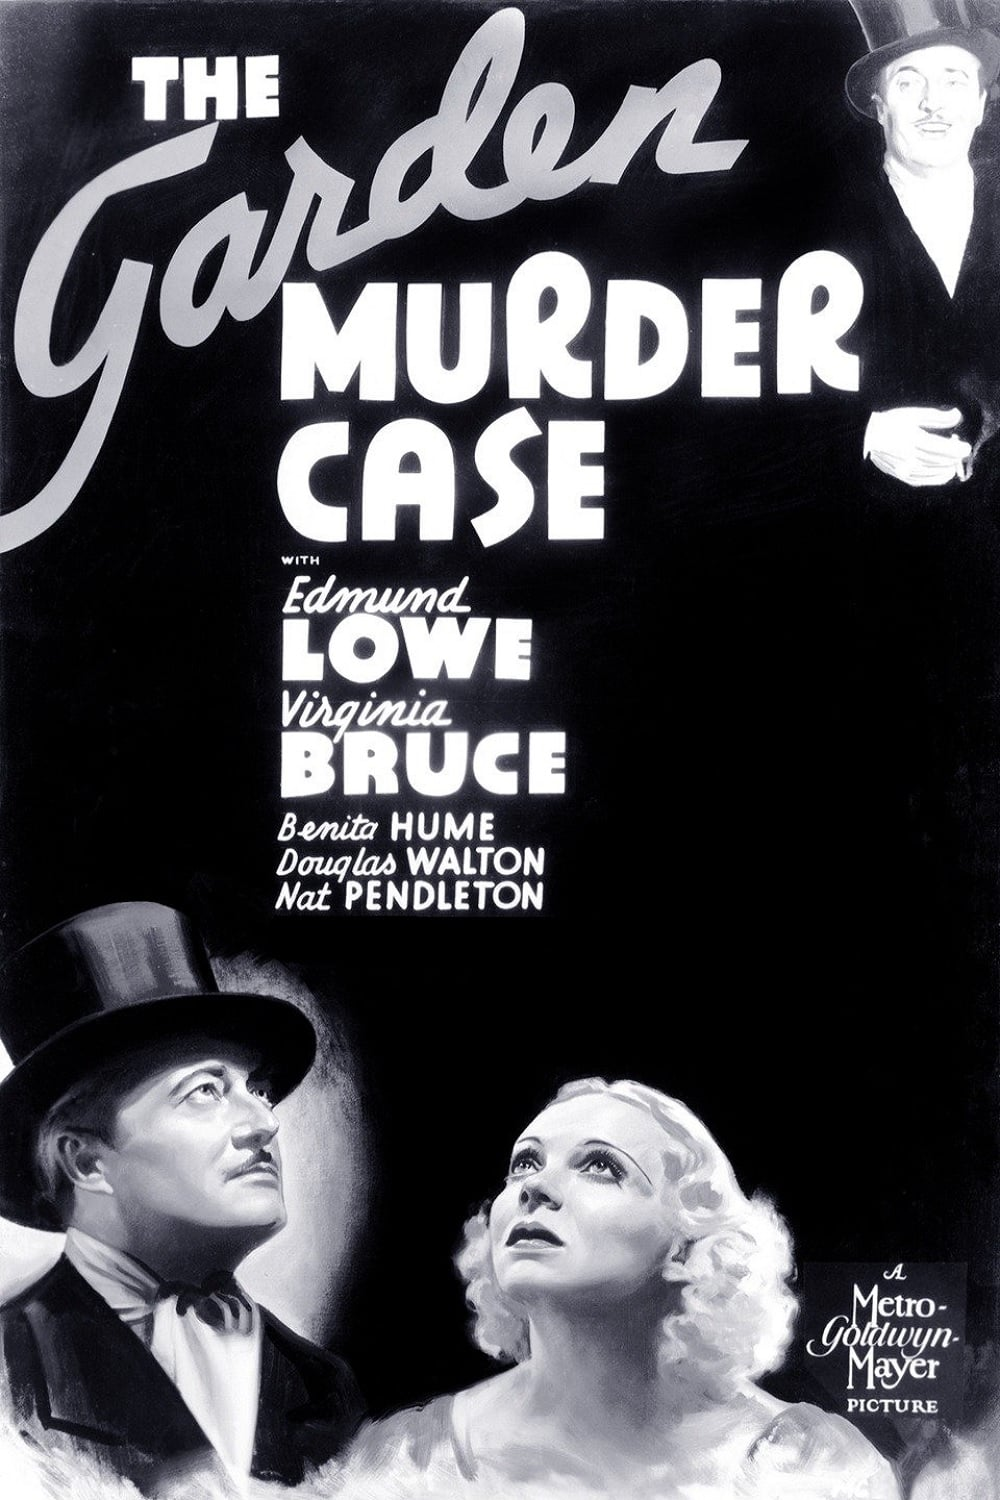 The Garden Murder Case (1936)